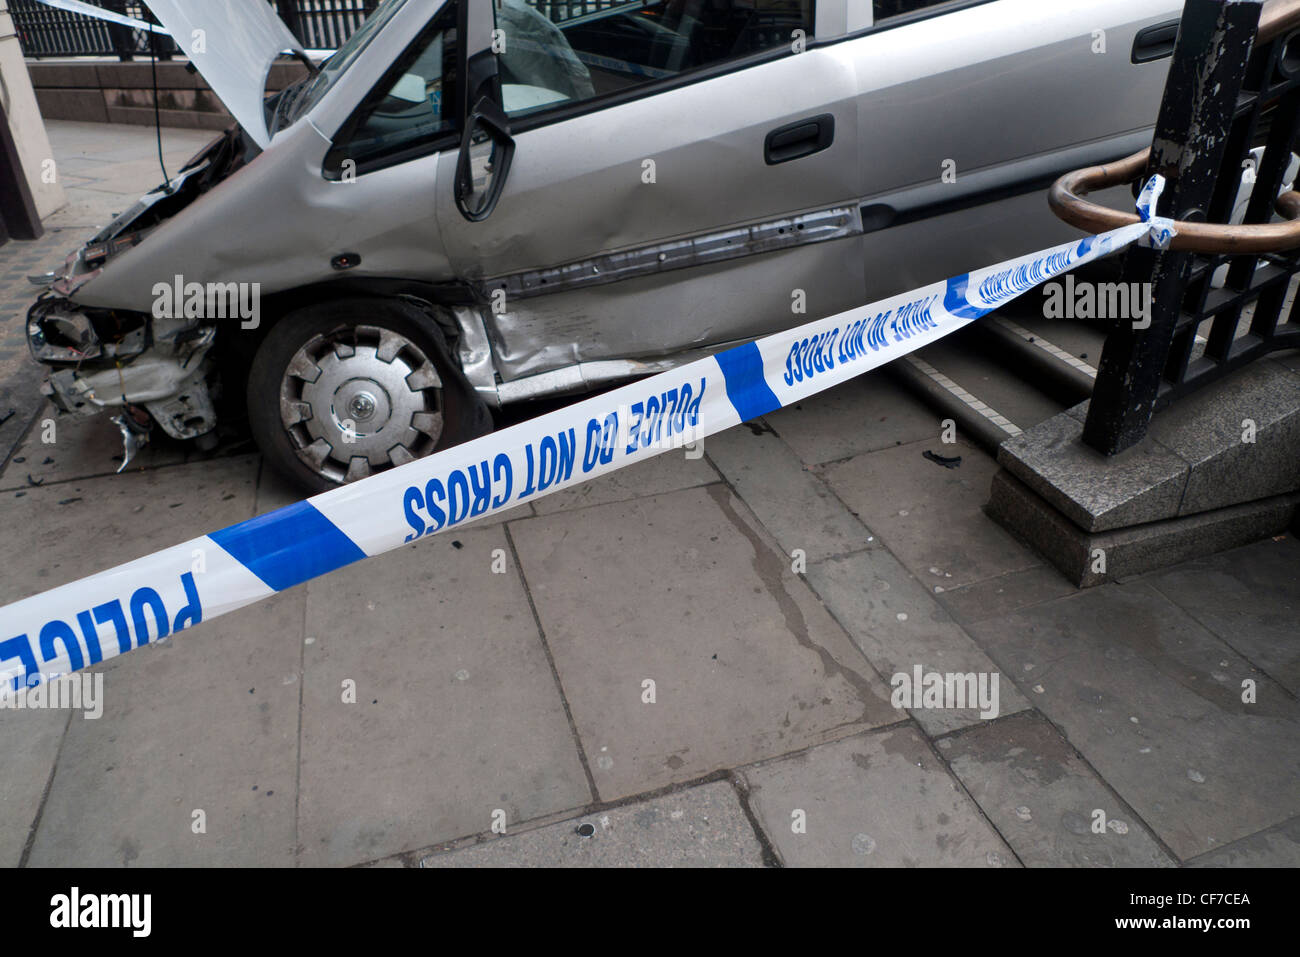 A crashed car cordoned off by a Police Do Not Cross line sign in London England UK  KATHY DEWITT - Stock Image